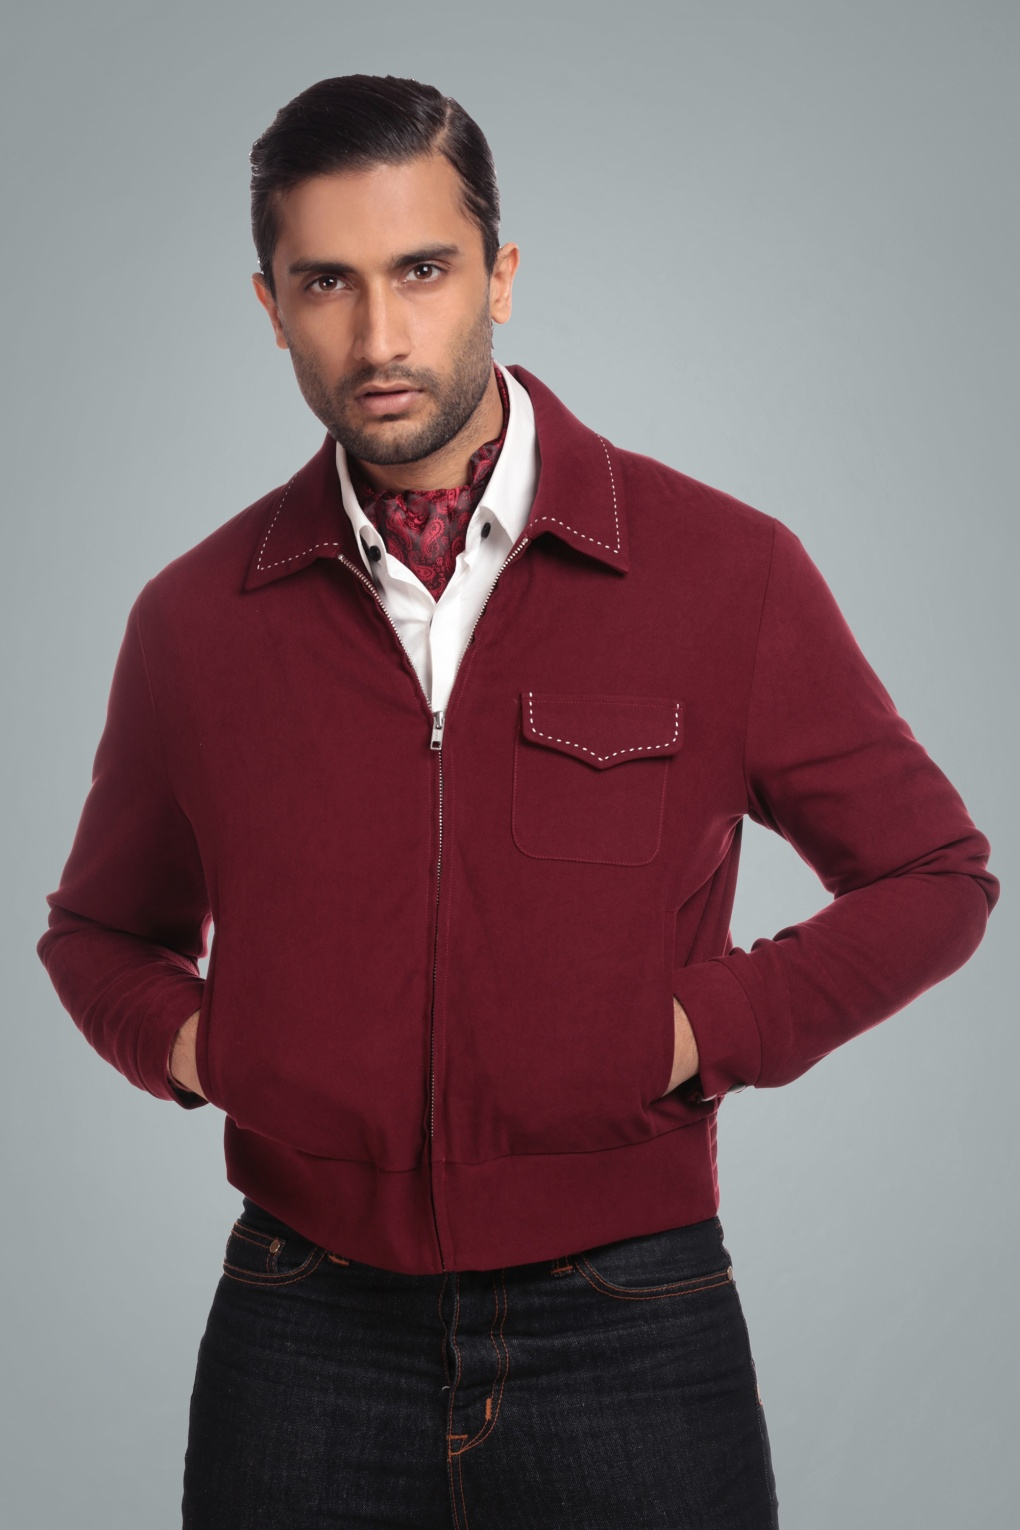 Men's Vintage Style Coats and Jackets 50s Morgan Plain Jacket in Burgundy £82.19 AT vintagedancer.com